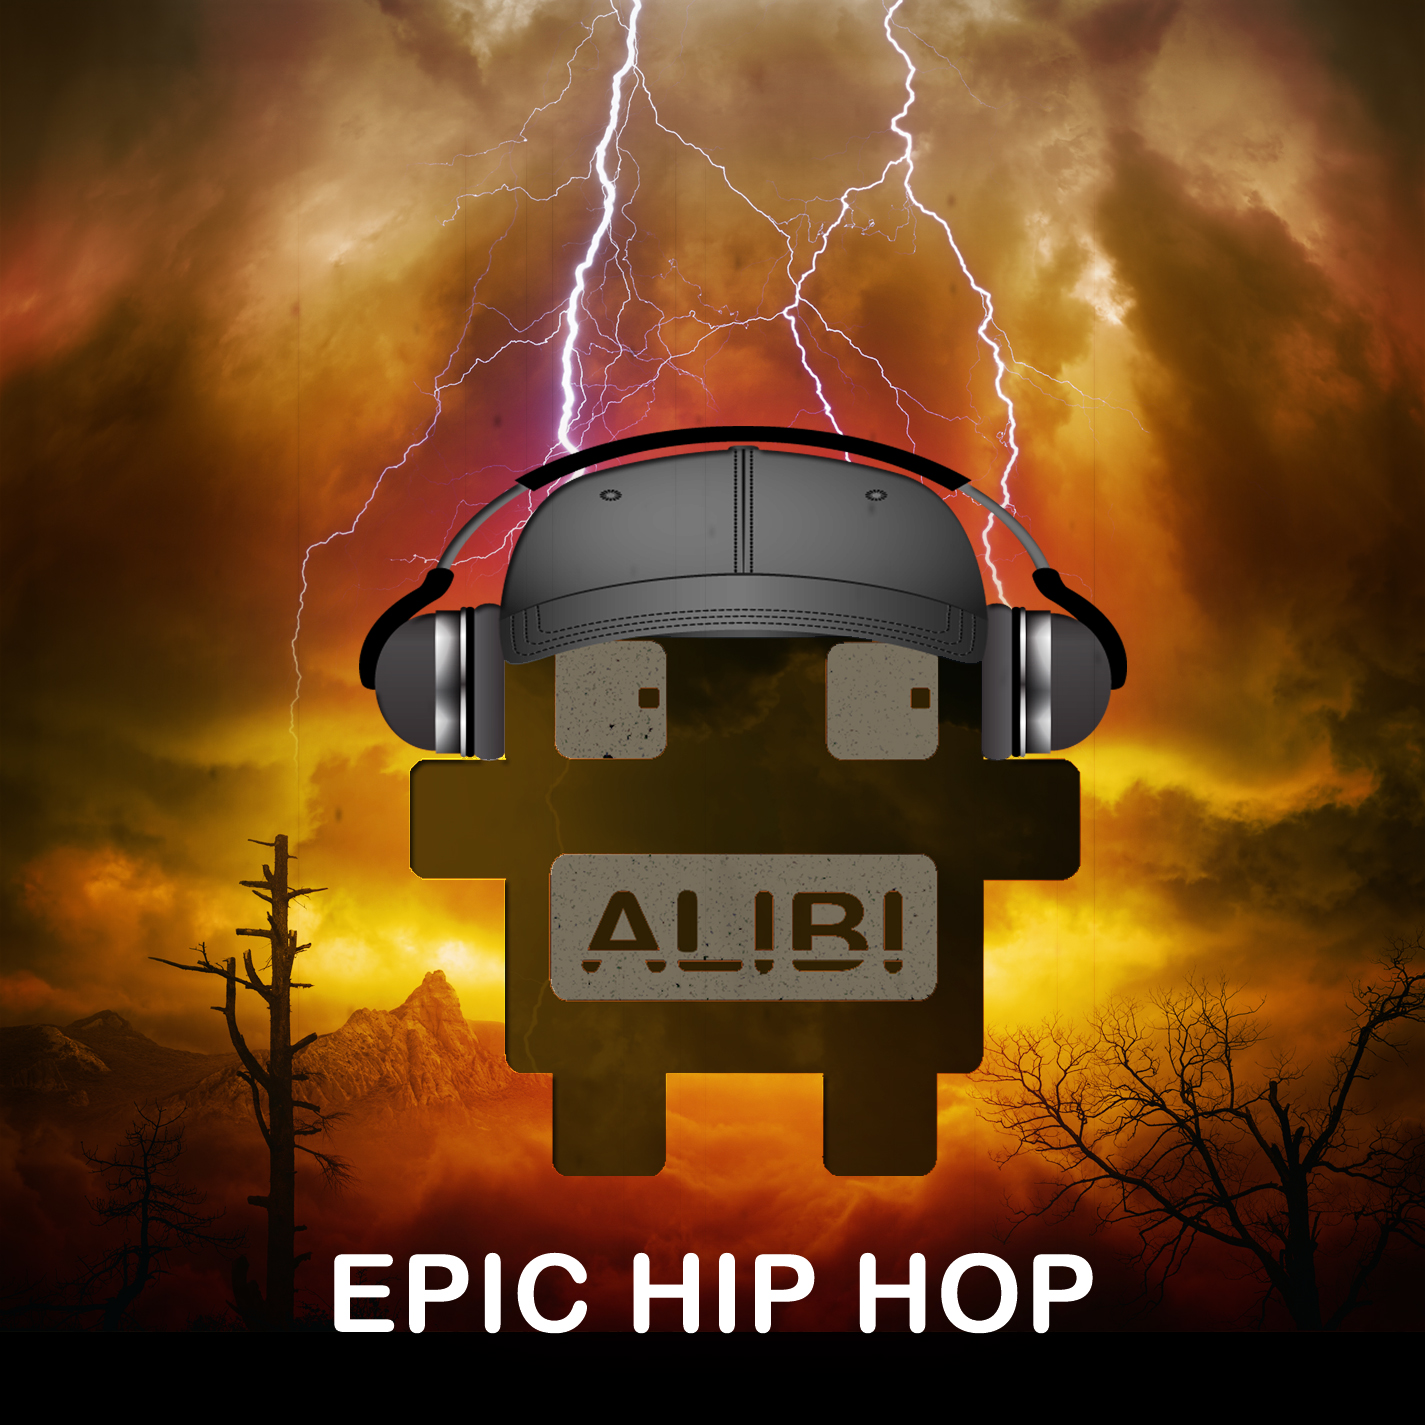 Drama - Epic Hip Hop